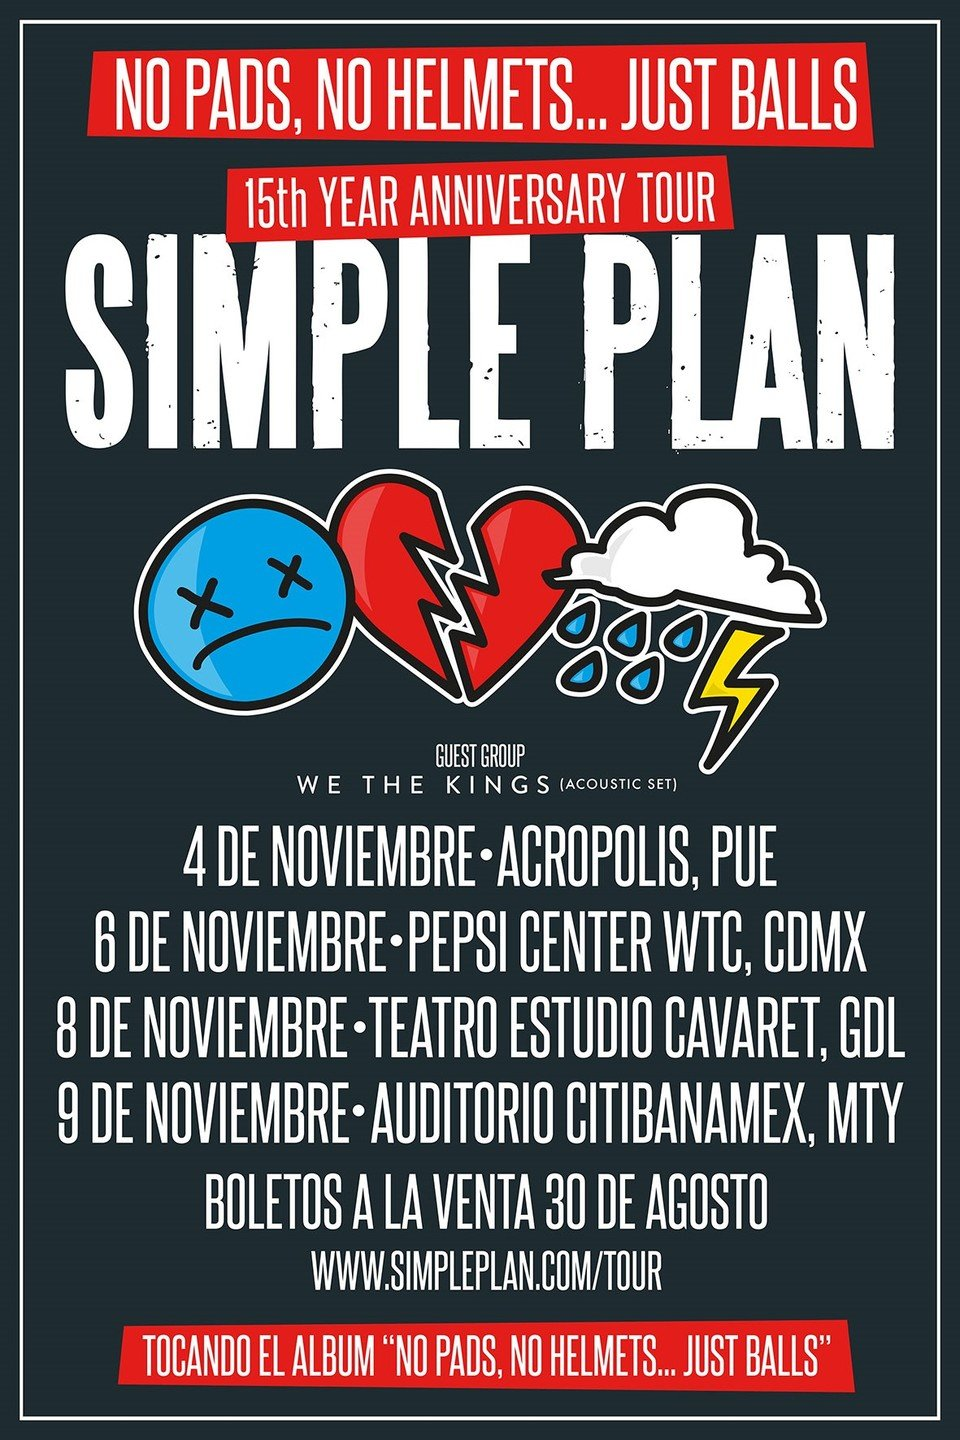 SIMPLE PLAN MEXICO TOUR.JPG